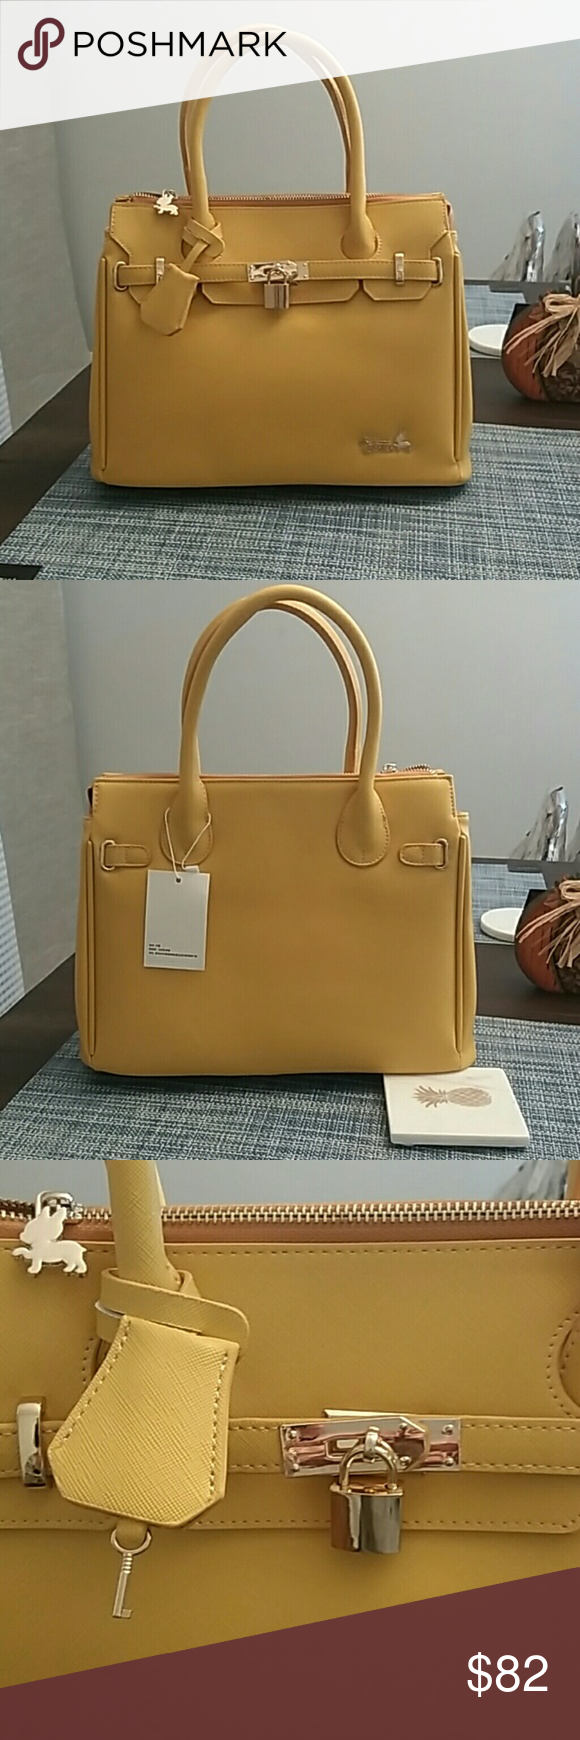 929efd50220c RB Vegan Faux Paris Classic Tote Bag-Yellow  Vegan Leather  Collection Name